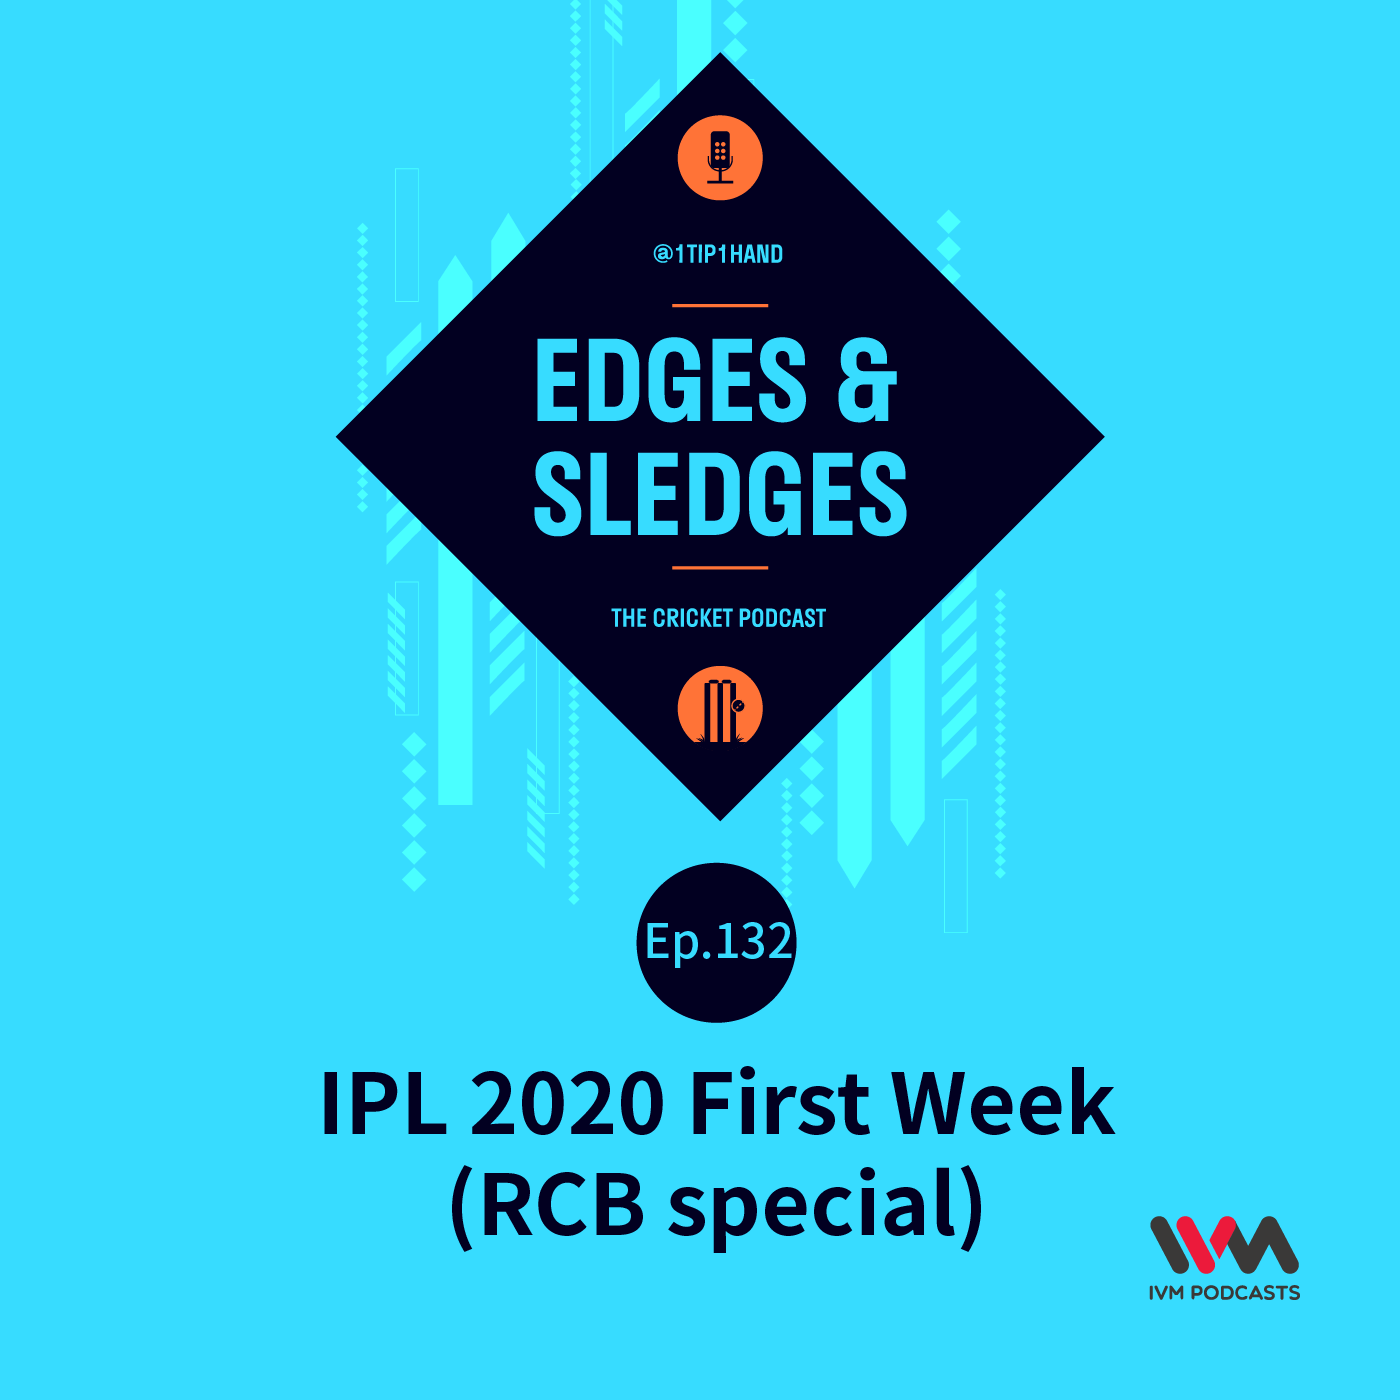 Ep. 132: IPL 2020 First Week (RCB Special)